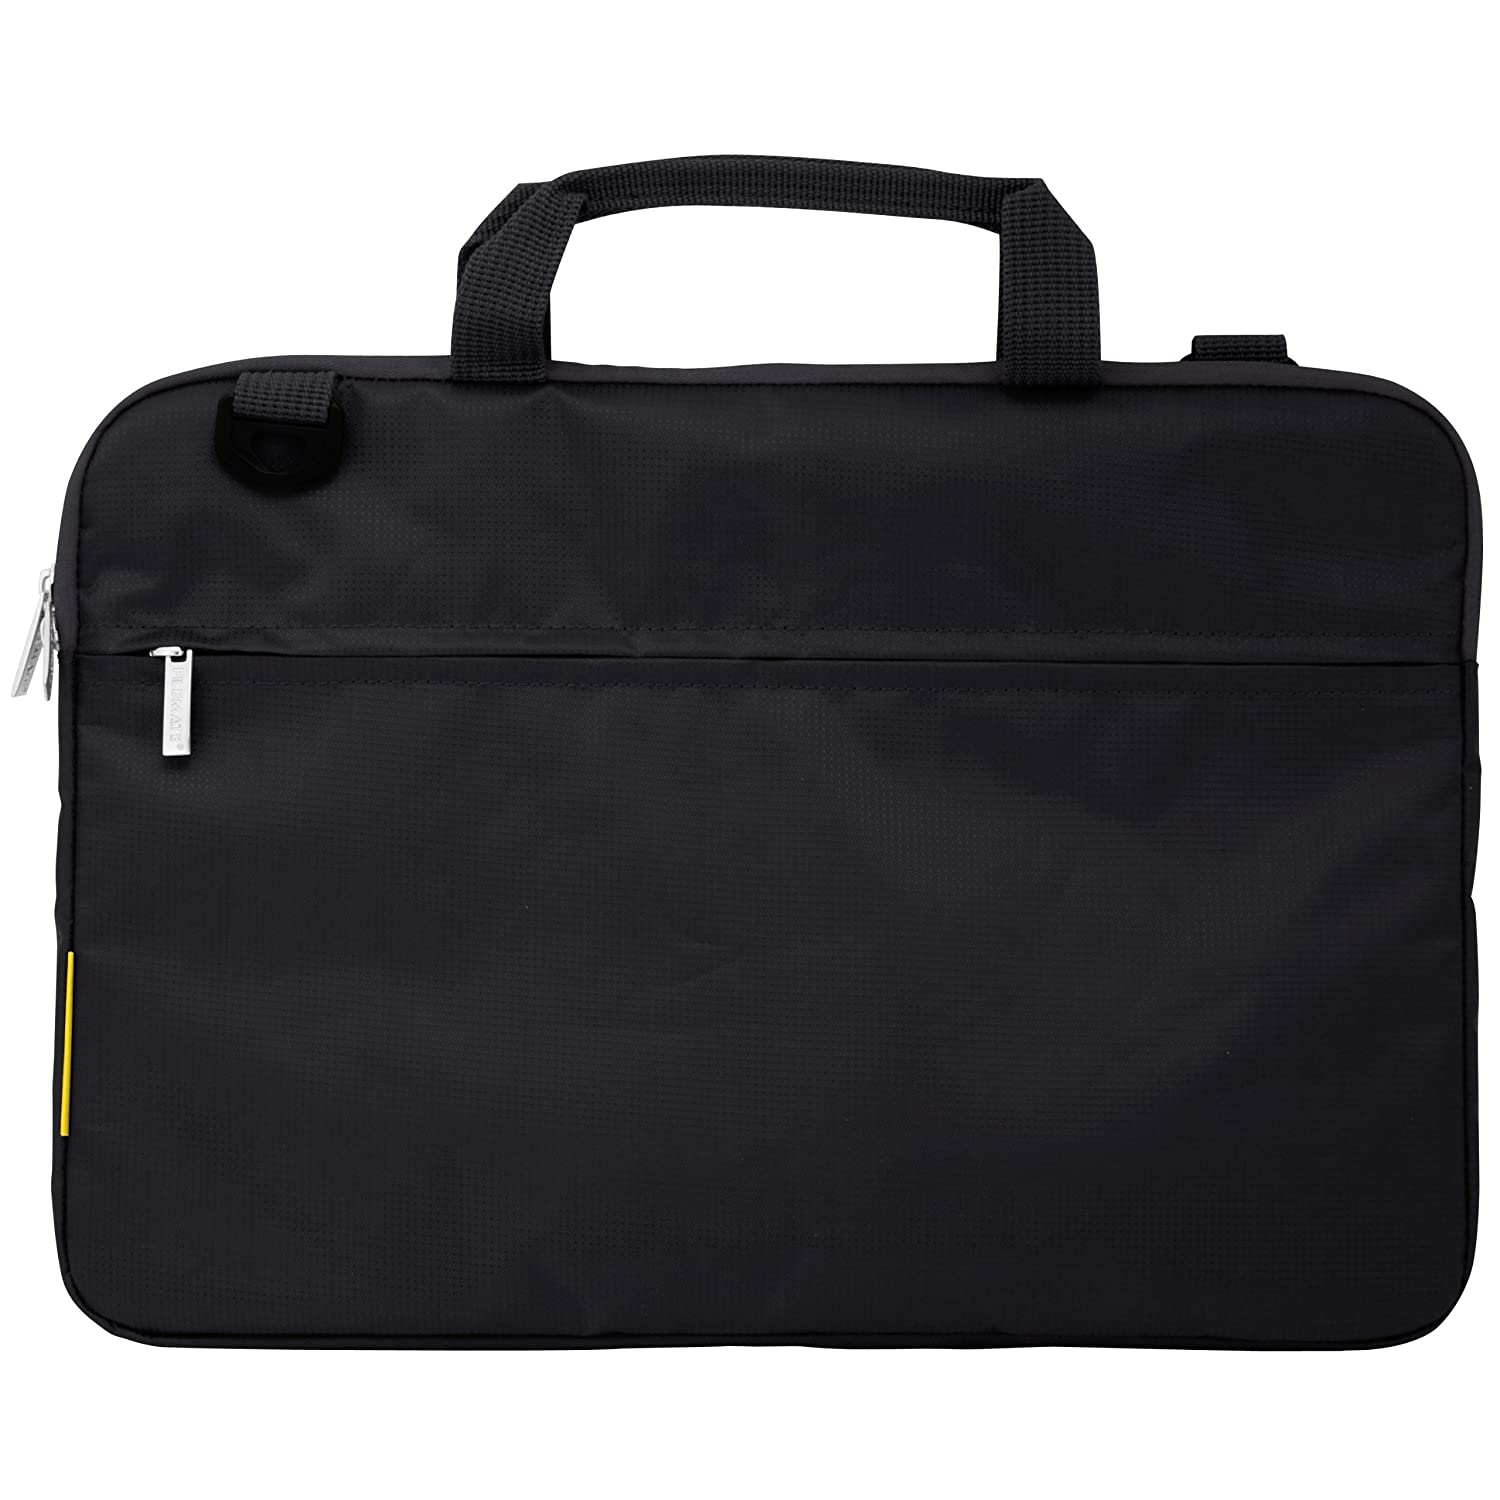 Filemate ECO 14 Inch Laptop Carrying Bag Black 3FMNG230BK14 R